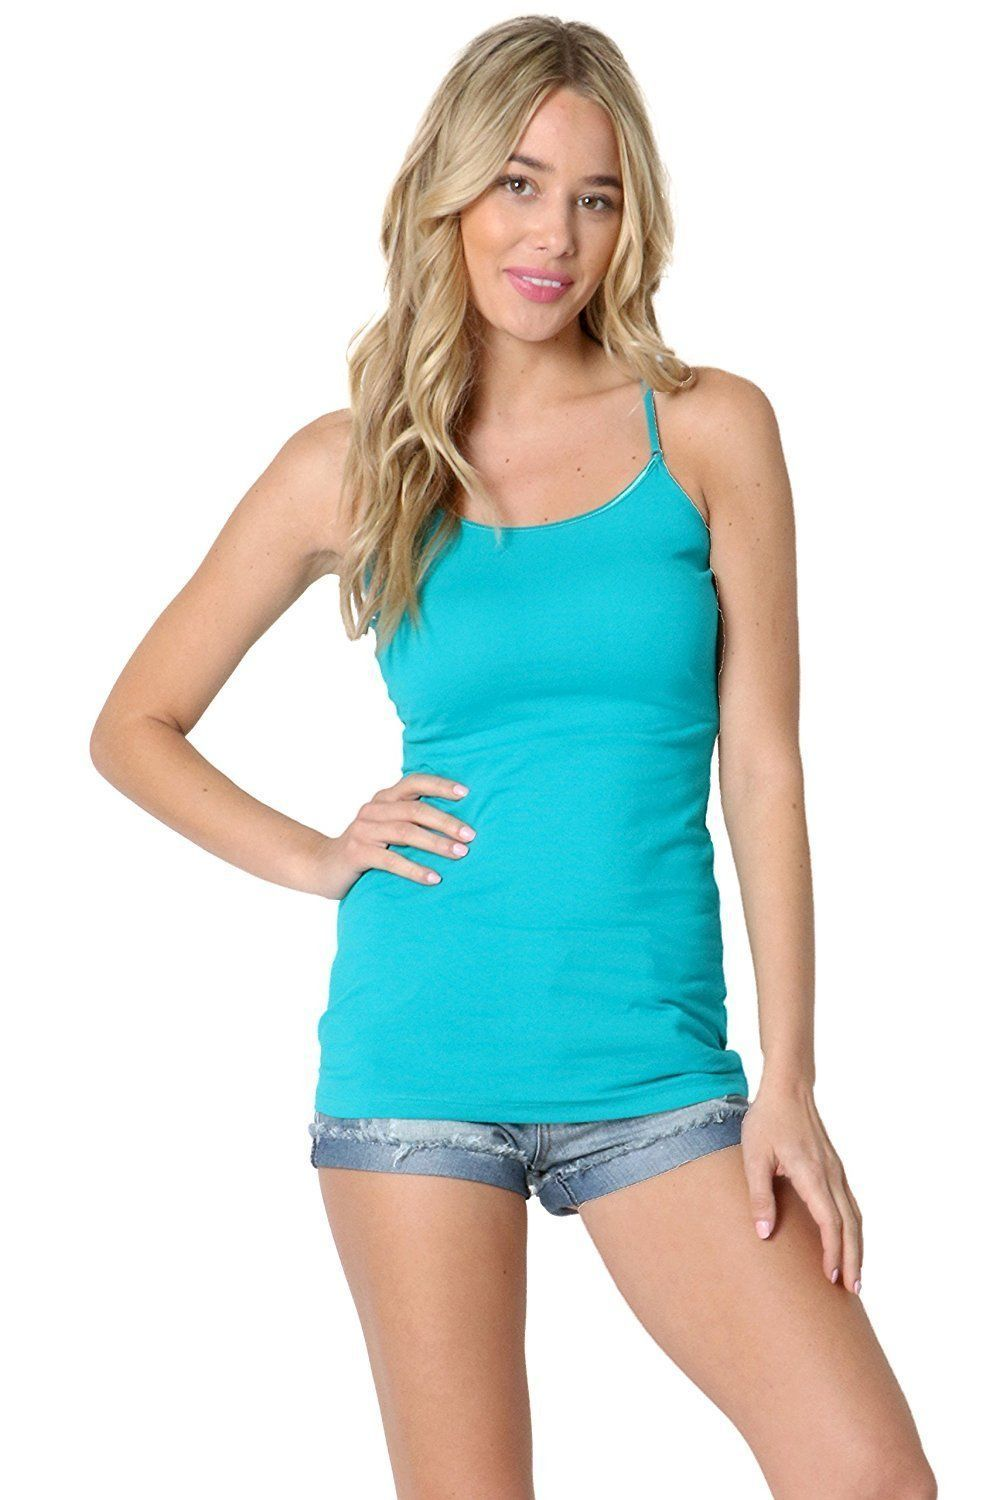 6488611c7b9c0 JUNIORSIZE   PLUS SIZE - A BASIC LONGLINE CAMI WITH ADJUSTABLE STRAPS AND A  ROUND